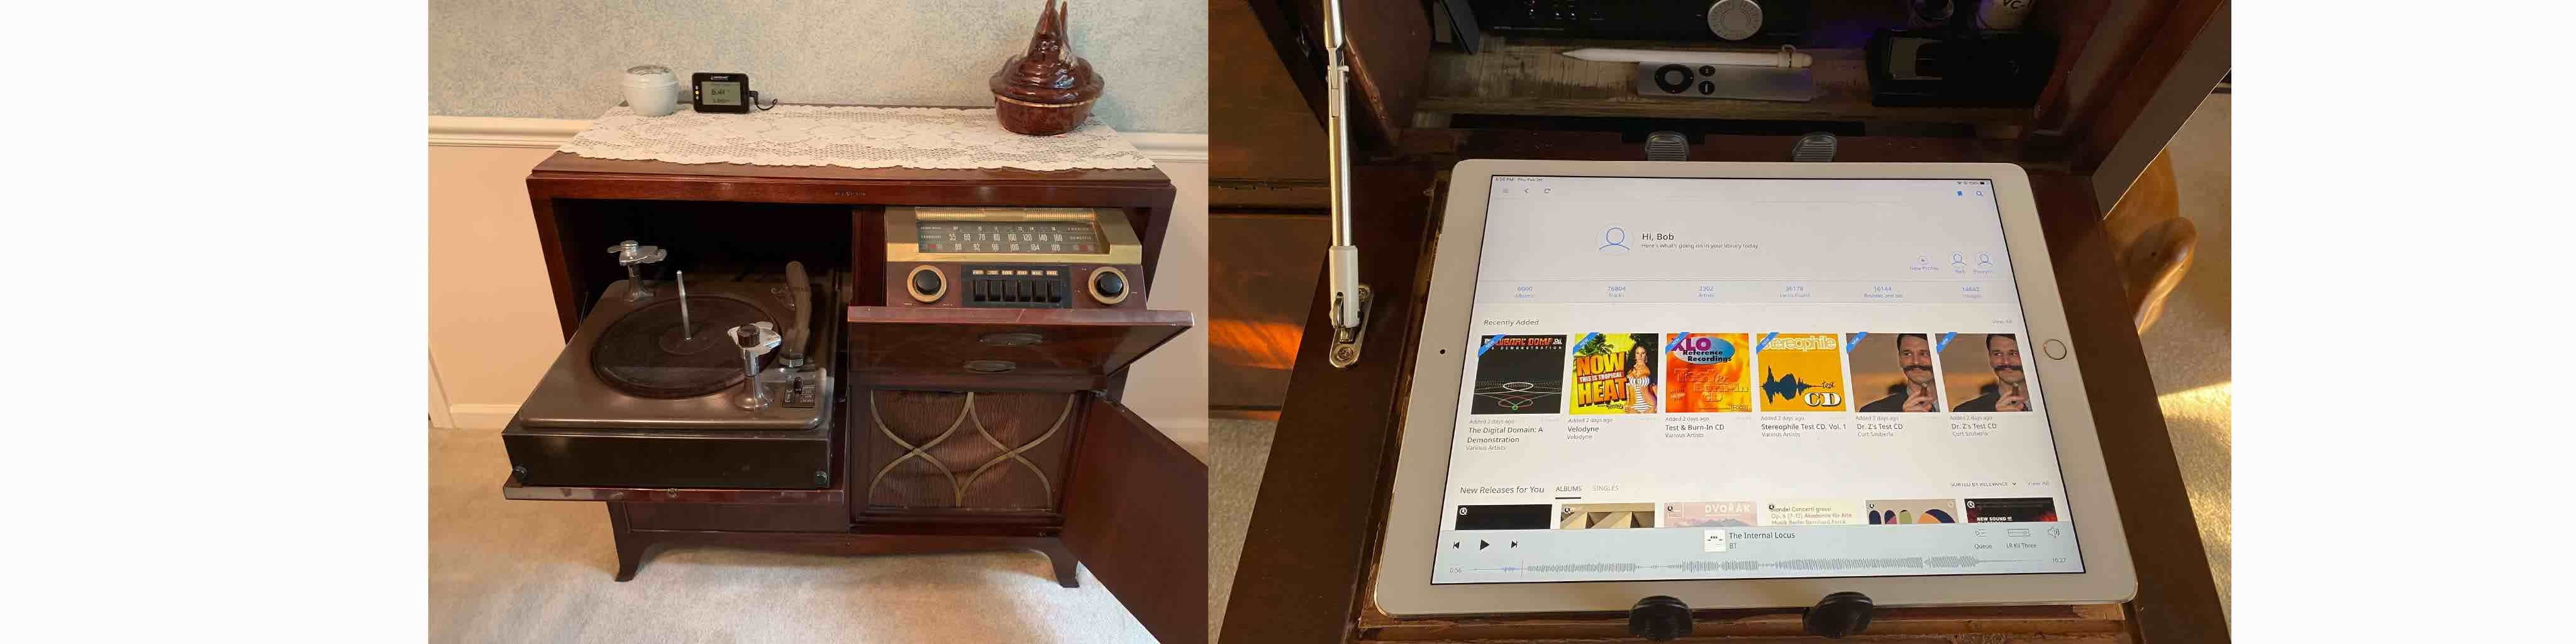 RCA Victrola 711V3 2020 | His Master's Voice Reimagined